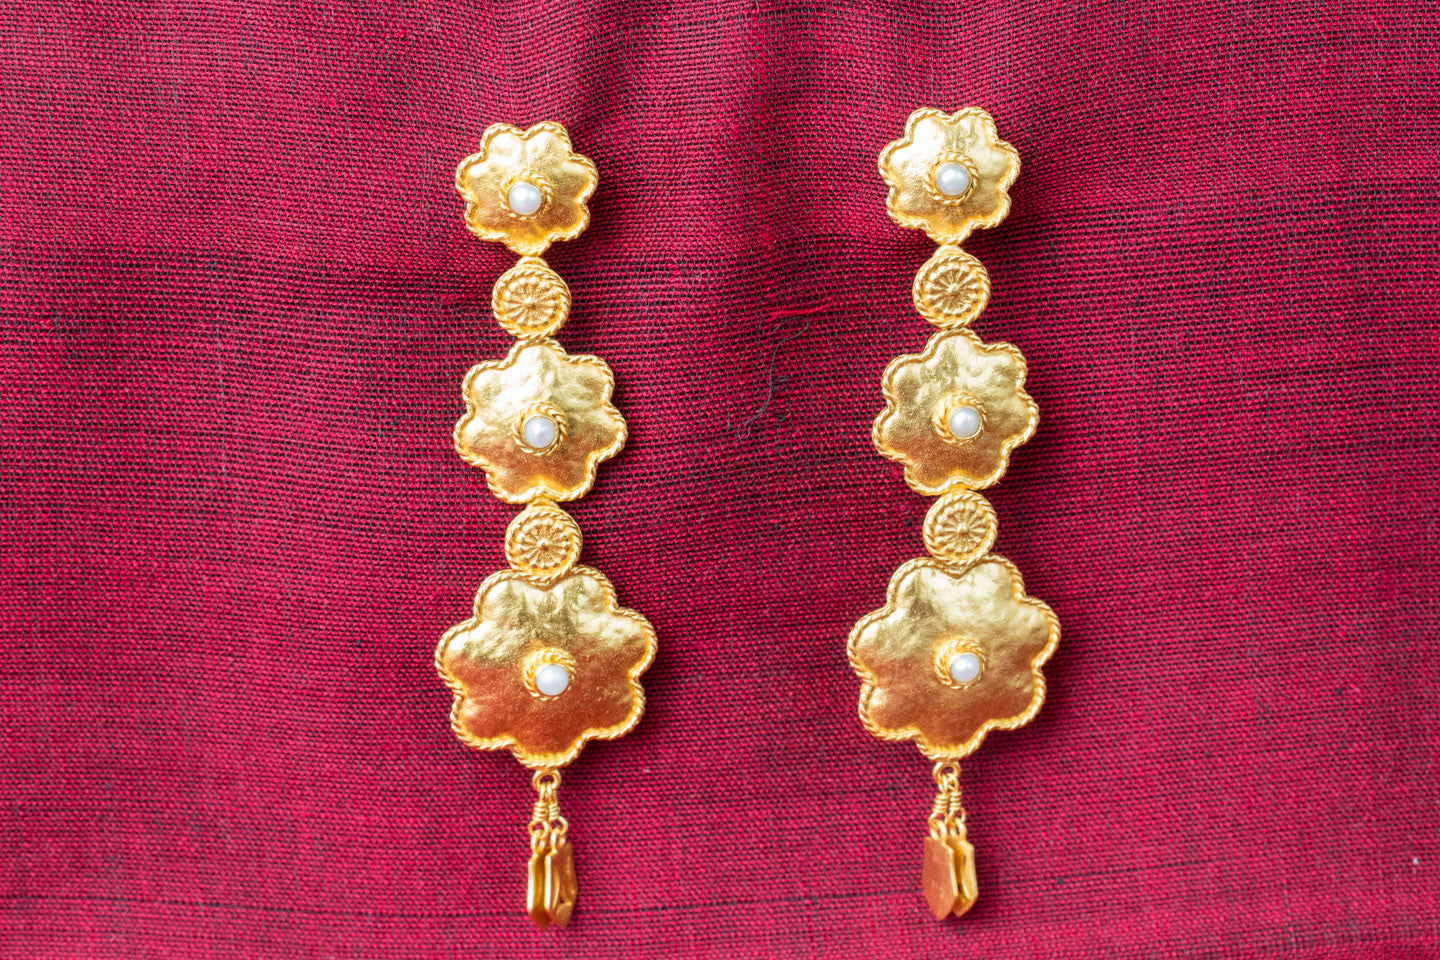 20a469-silver-gold-plated-amrapali-earrings-floral-design